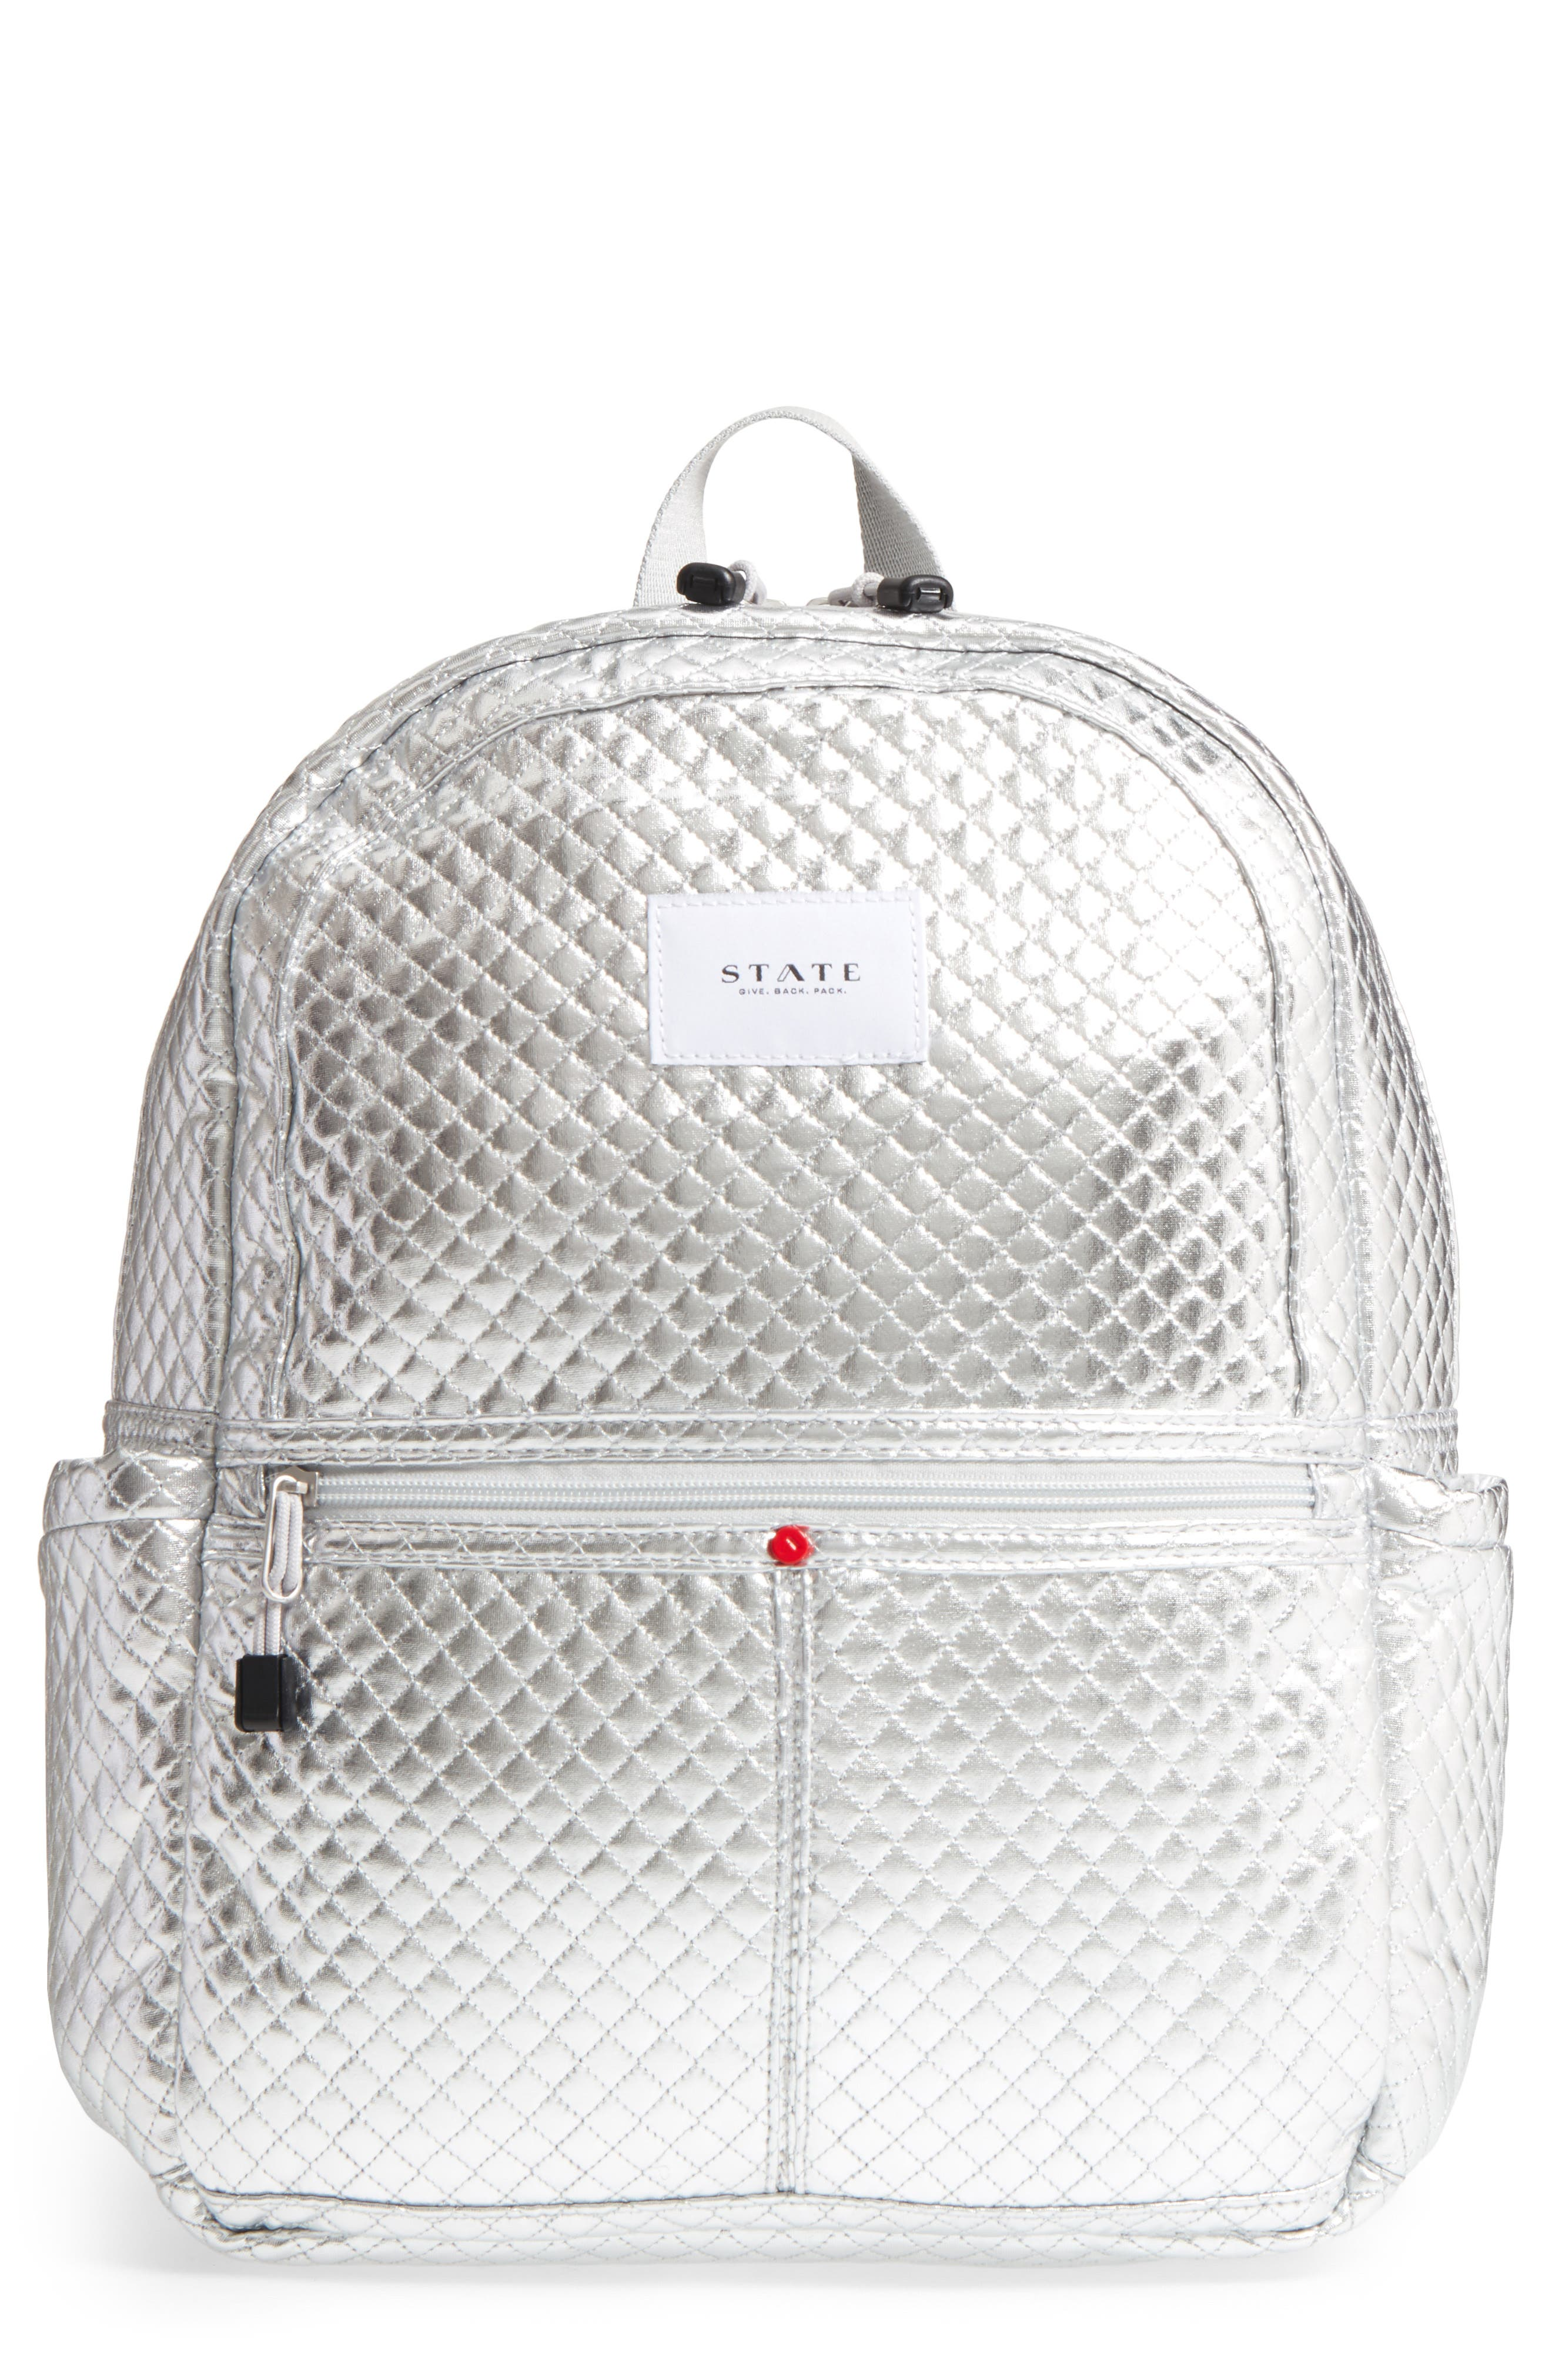 Main Image - STATE Bags Quilted Metallic Kane Backpack